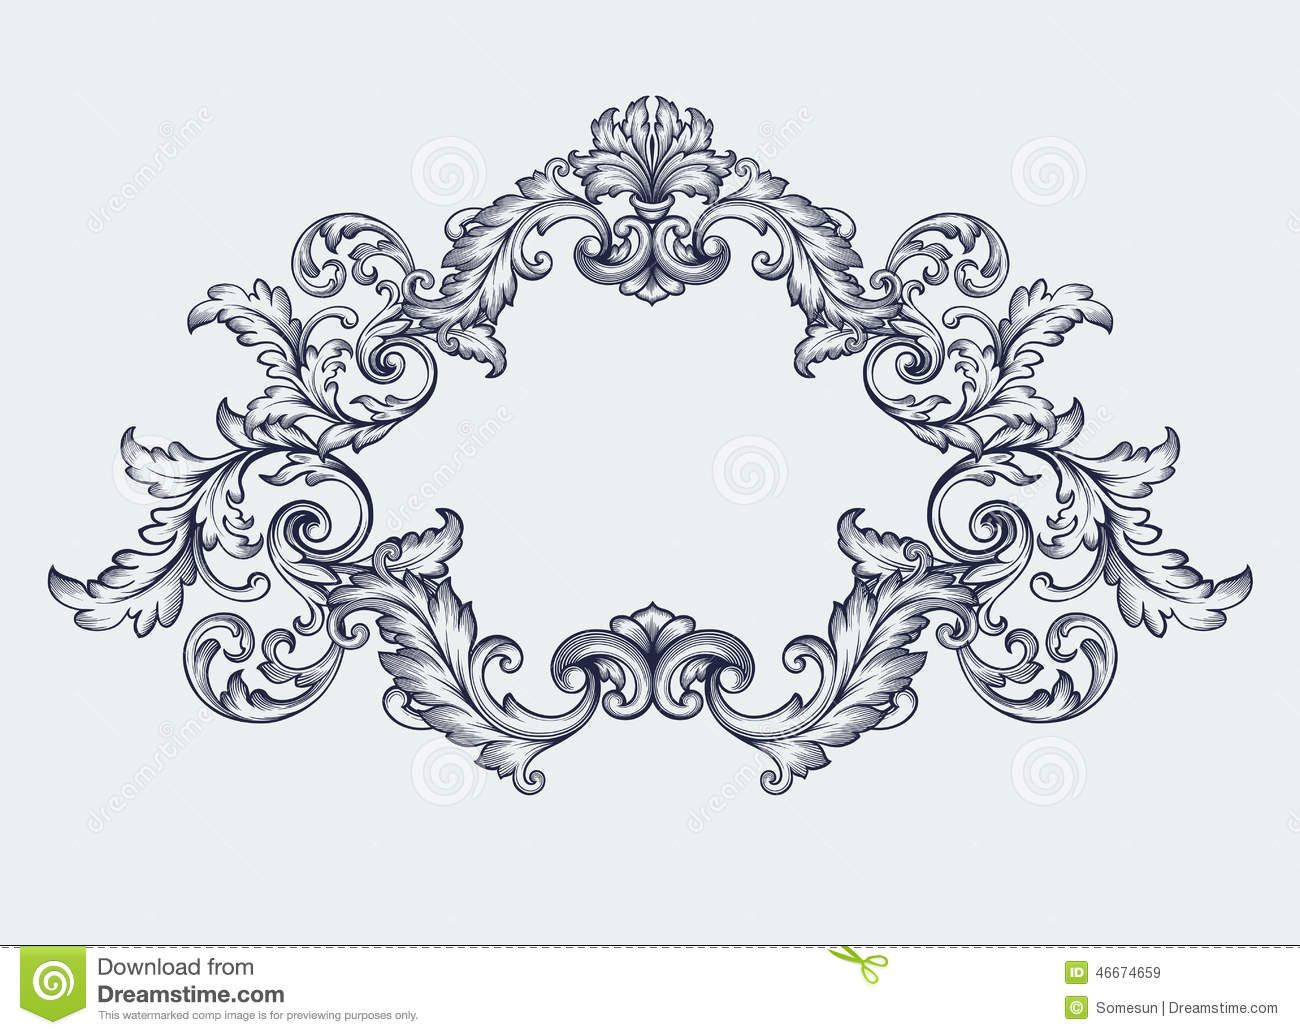 of vintage baroque engraving floral scroll filigree design frame vector art clipart and stock vectors